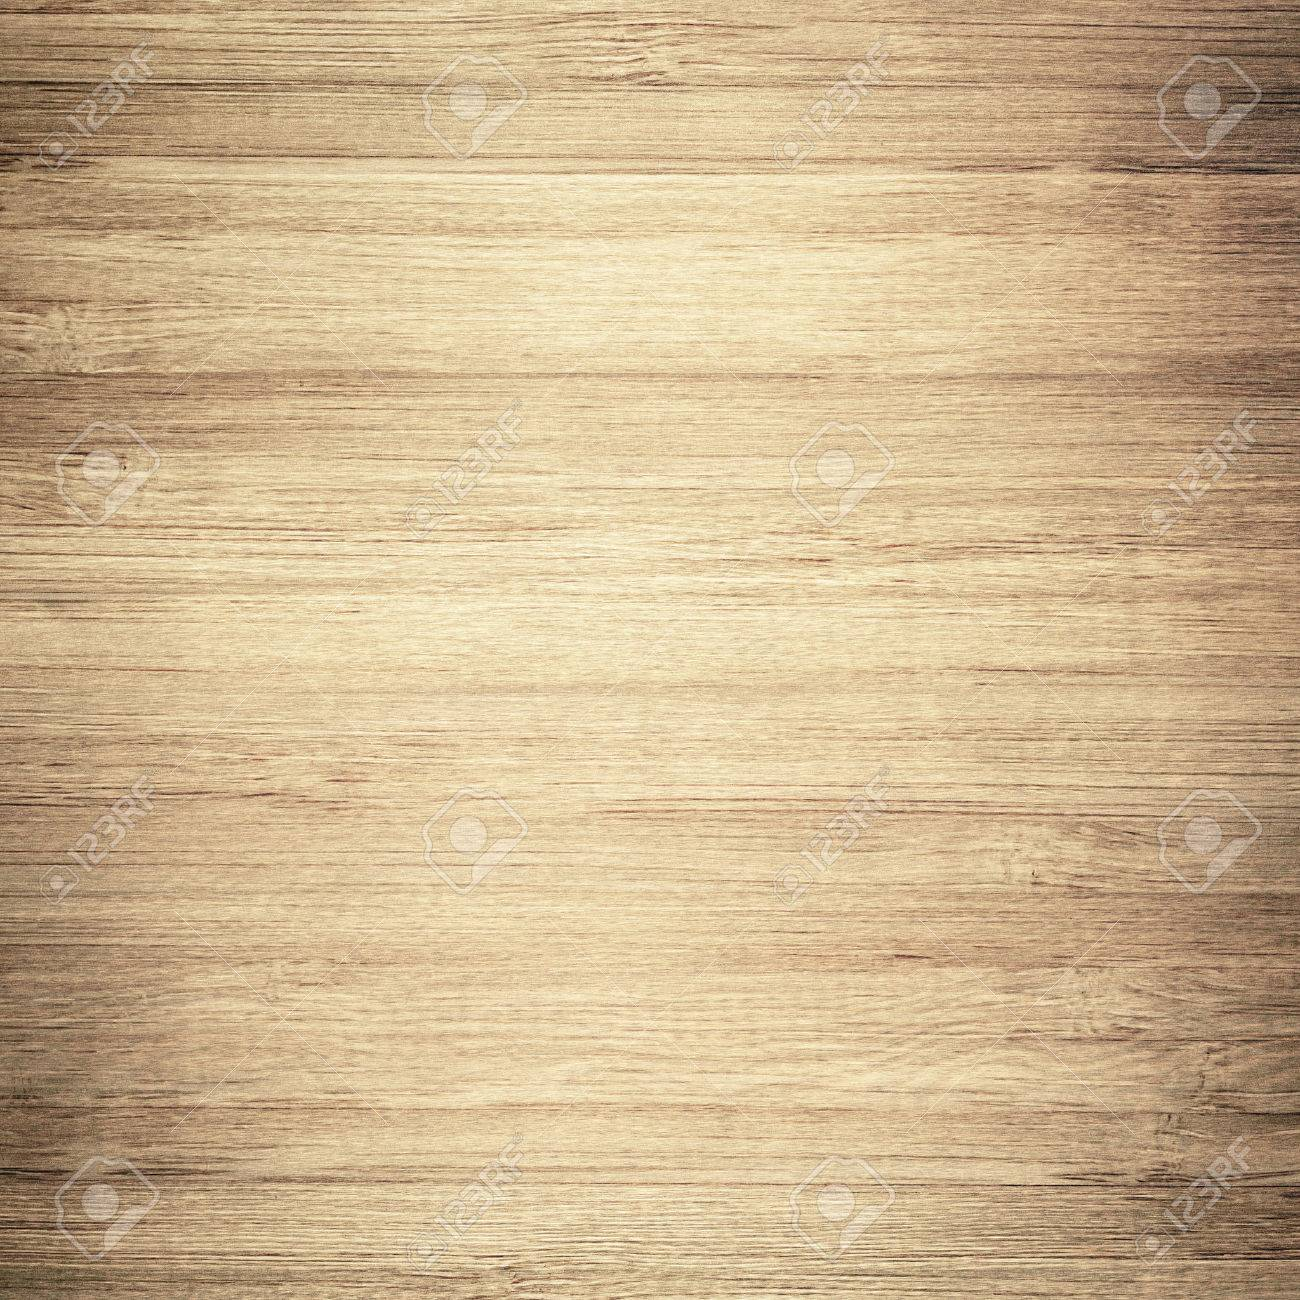 Wood texture for your background Stock Photo - 34179008